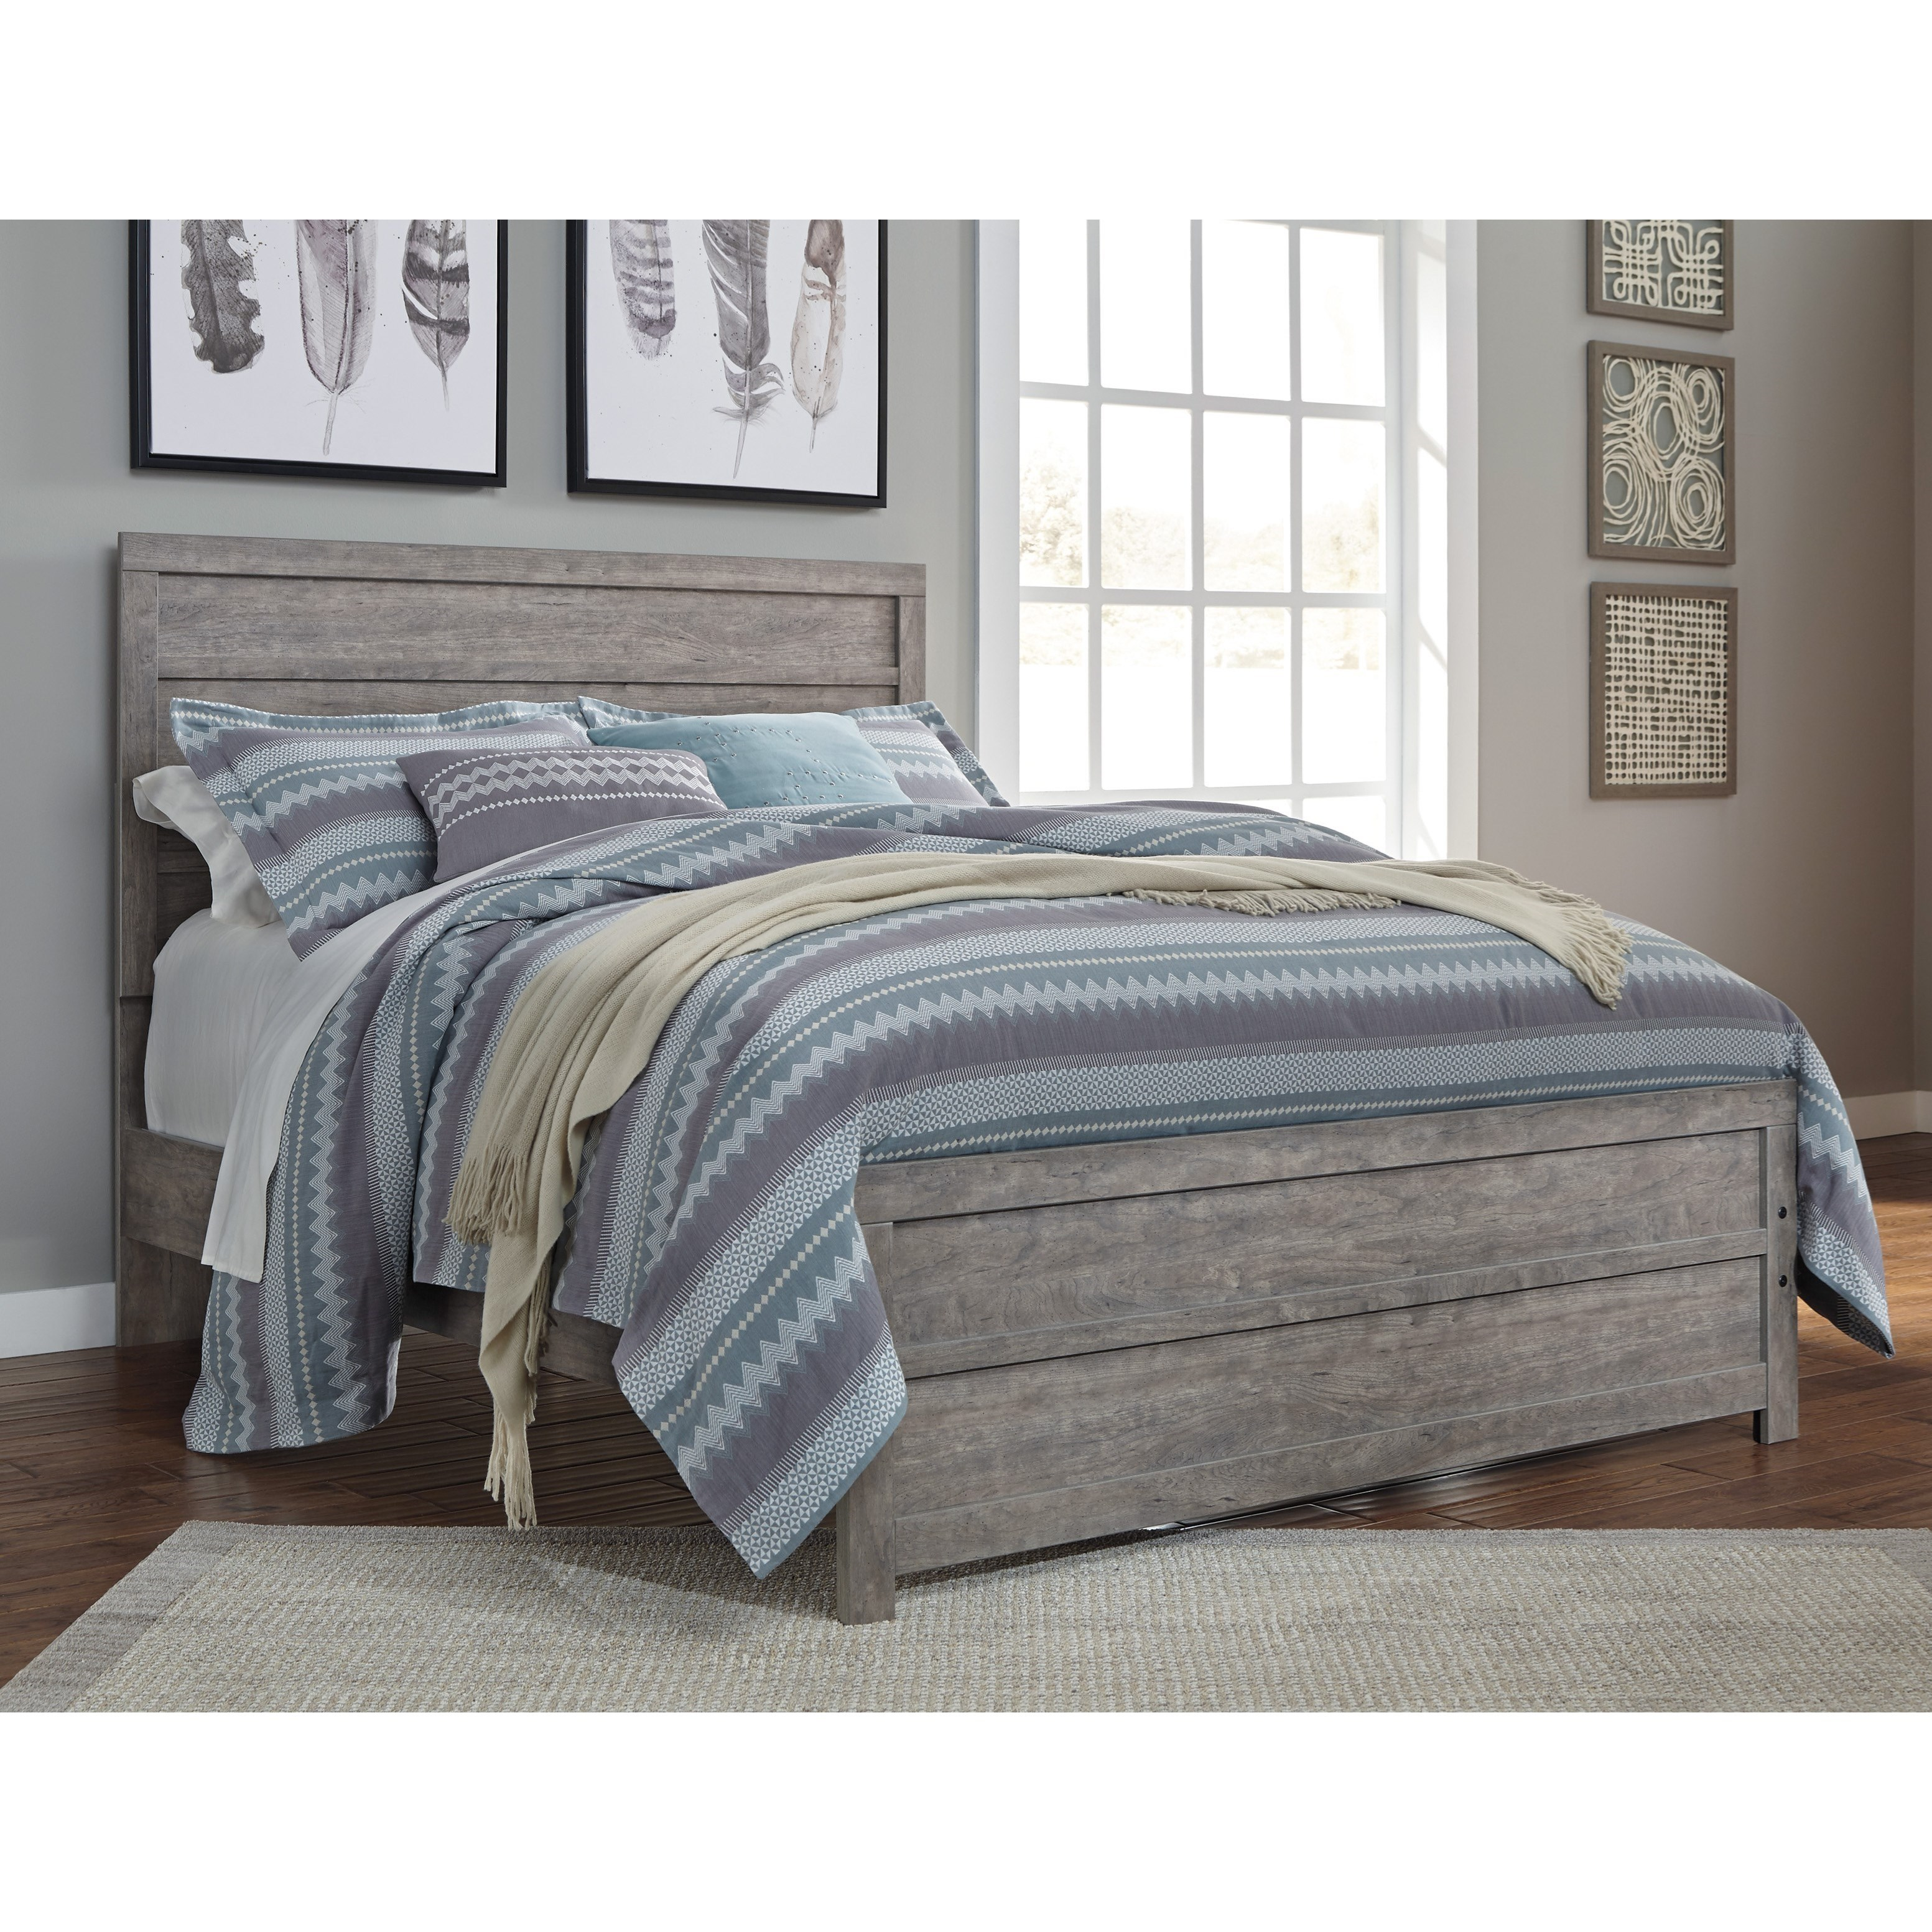 Signature design by ashley culverbach contemporary queen bed with low profile footboard value for Annifern poster bedroom collection